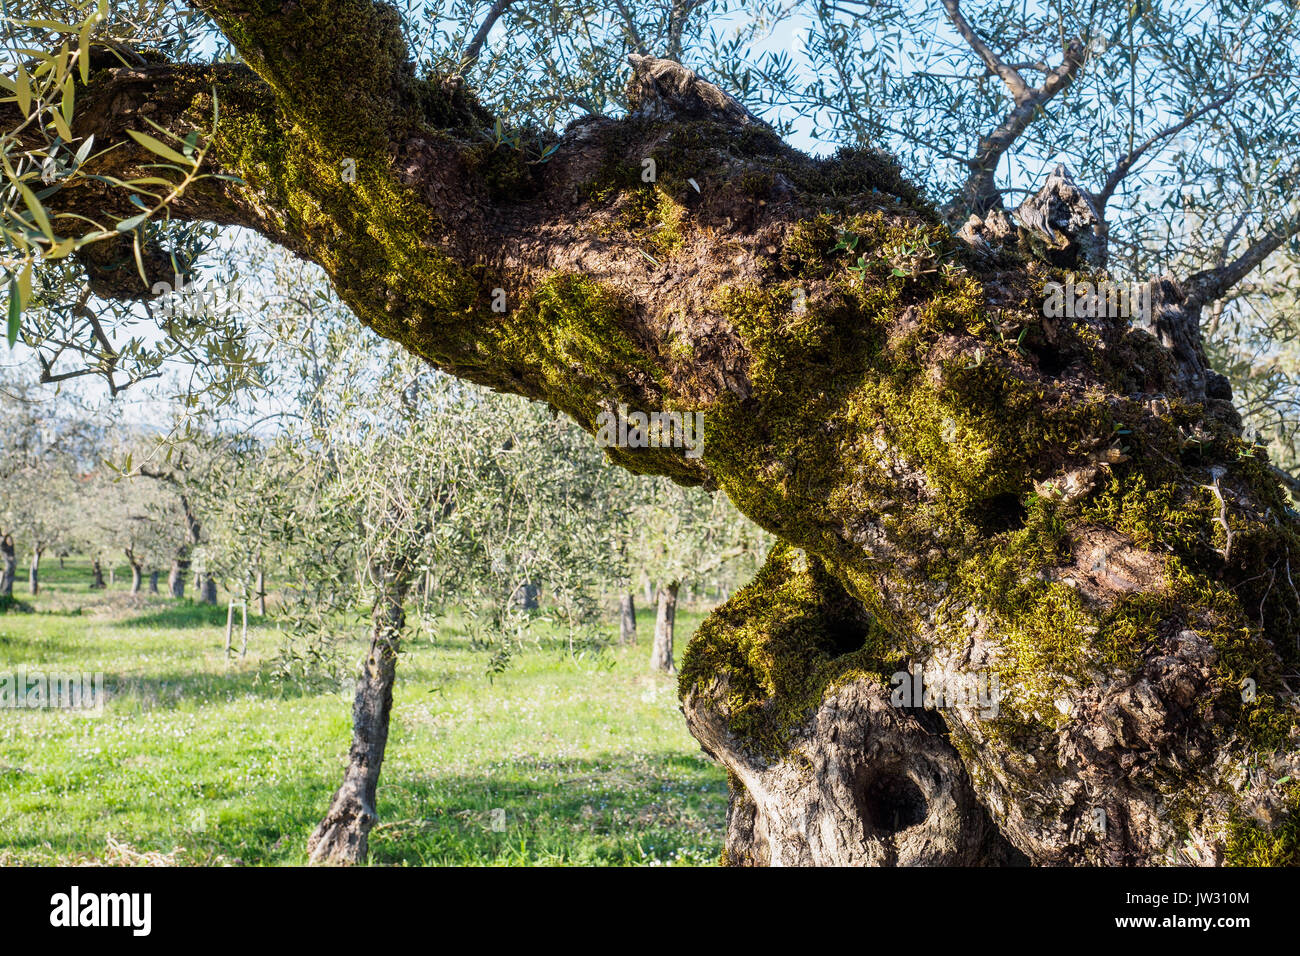 Secular olive trees in the region of Umbria (Italy). - Stock Image